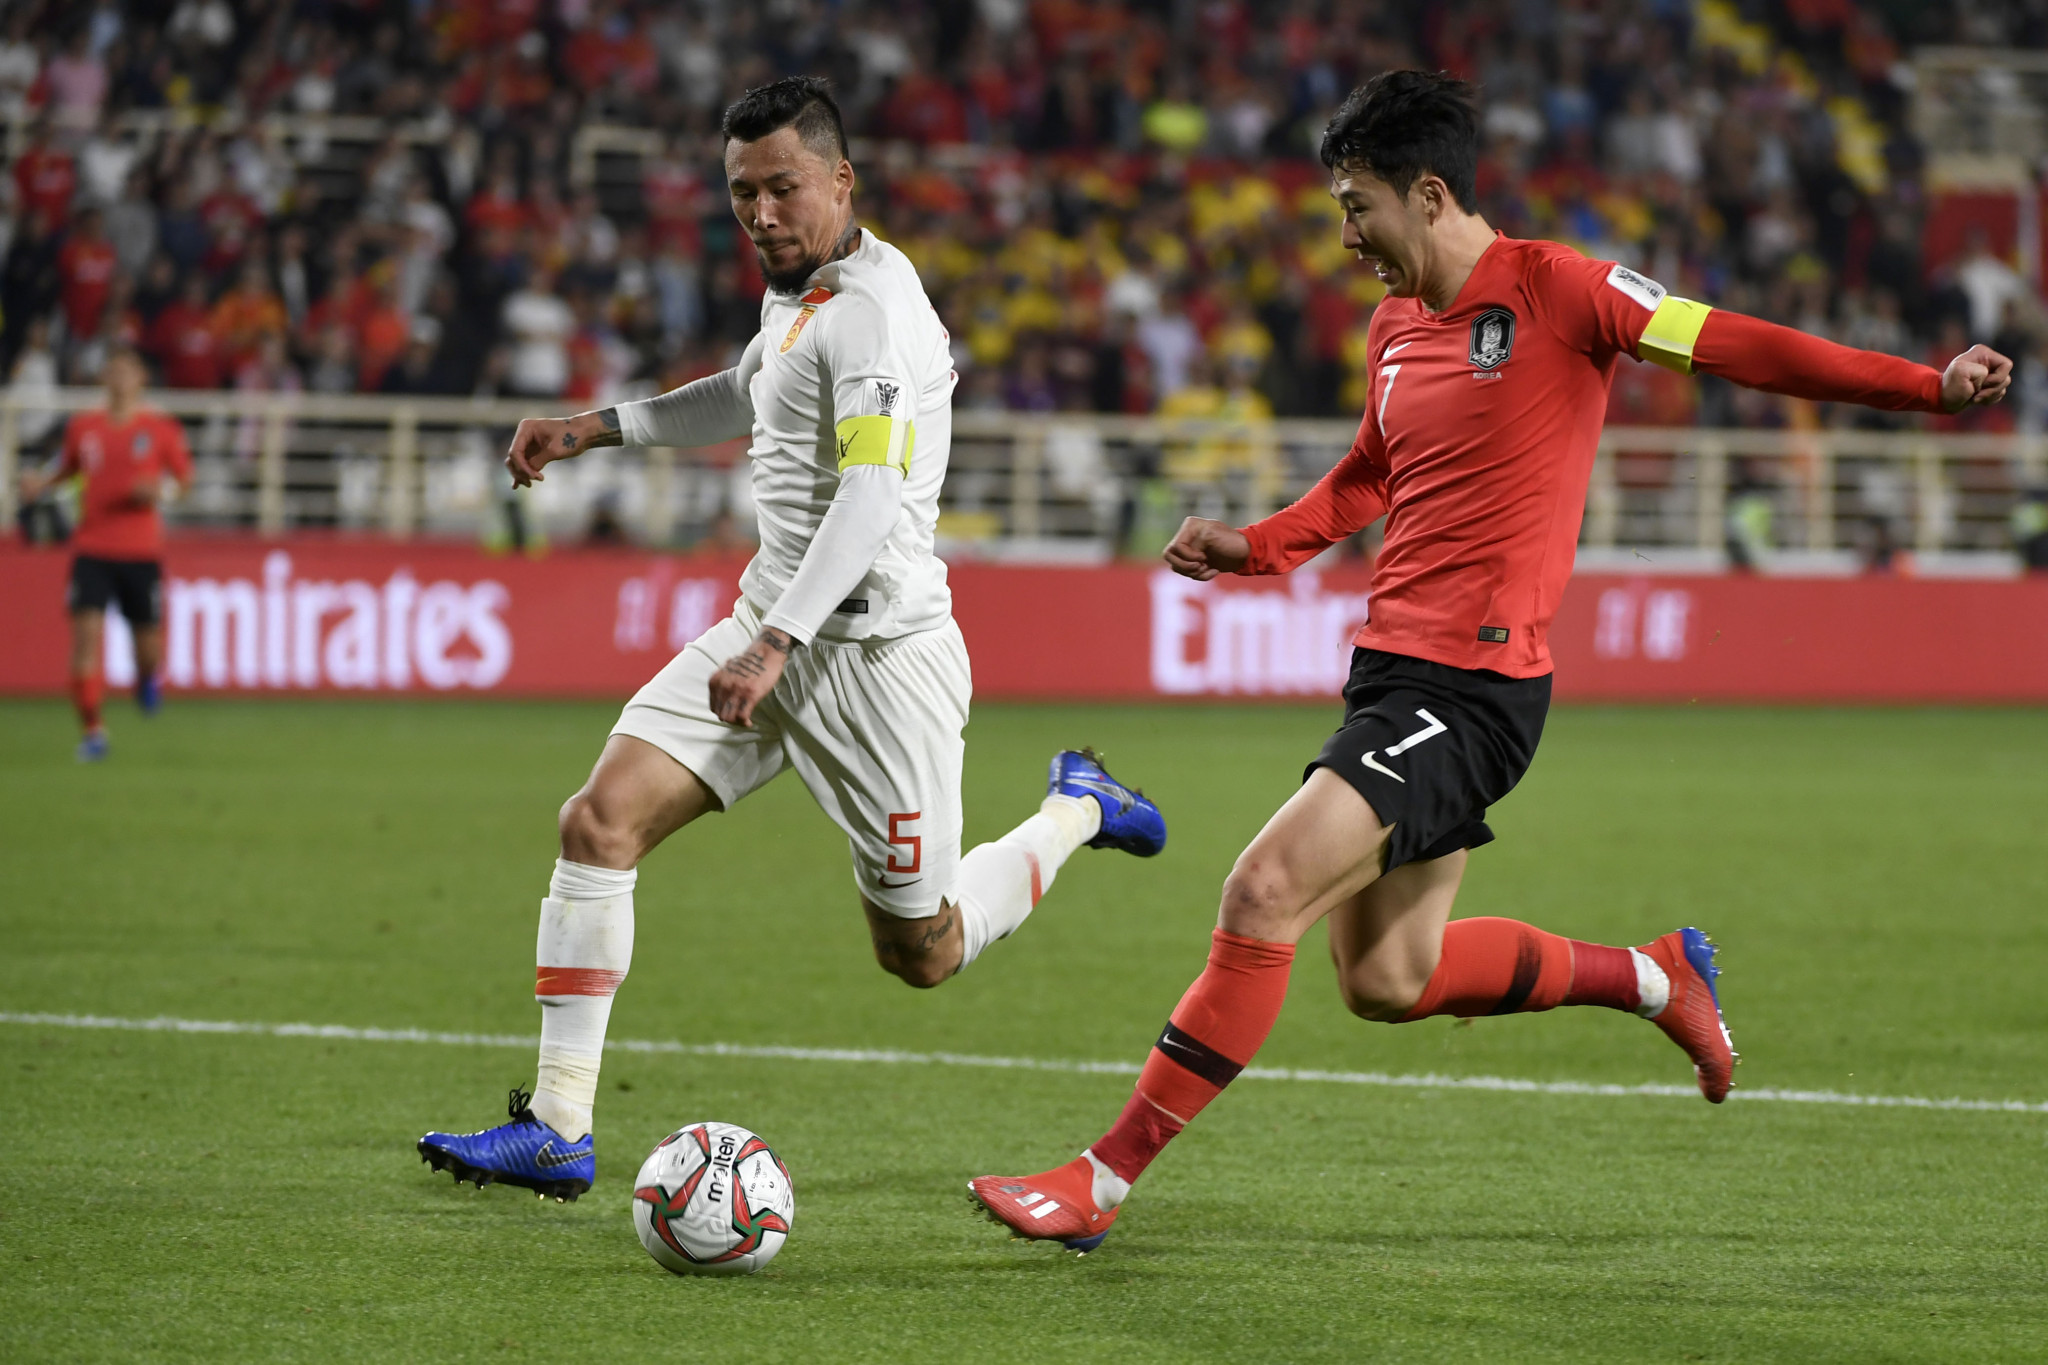 South Korea were boosted by the addition of Son Heung-min to the team, with the striker captaining his side to a 2-0 victory over China at the AFC Asian Cup ©Getty Images